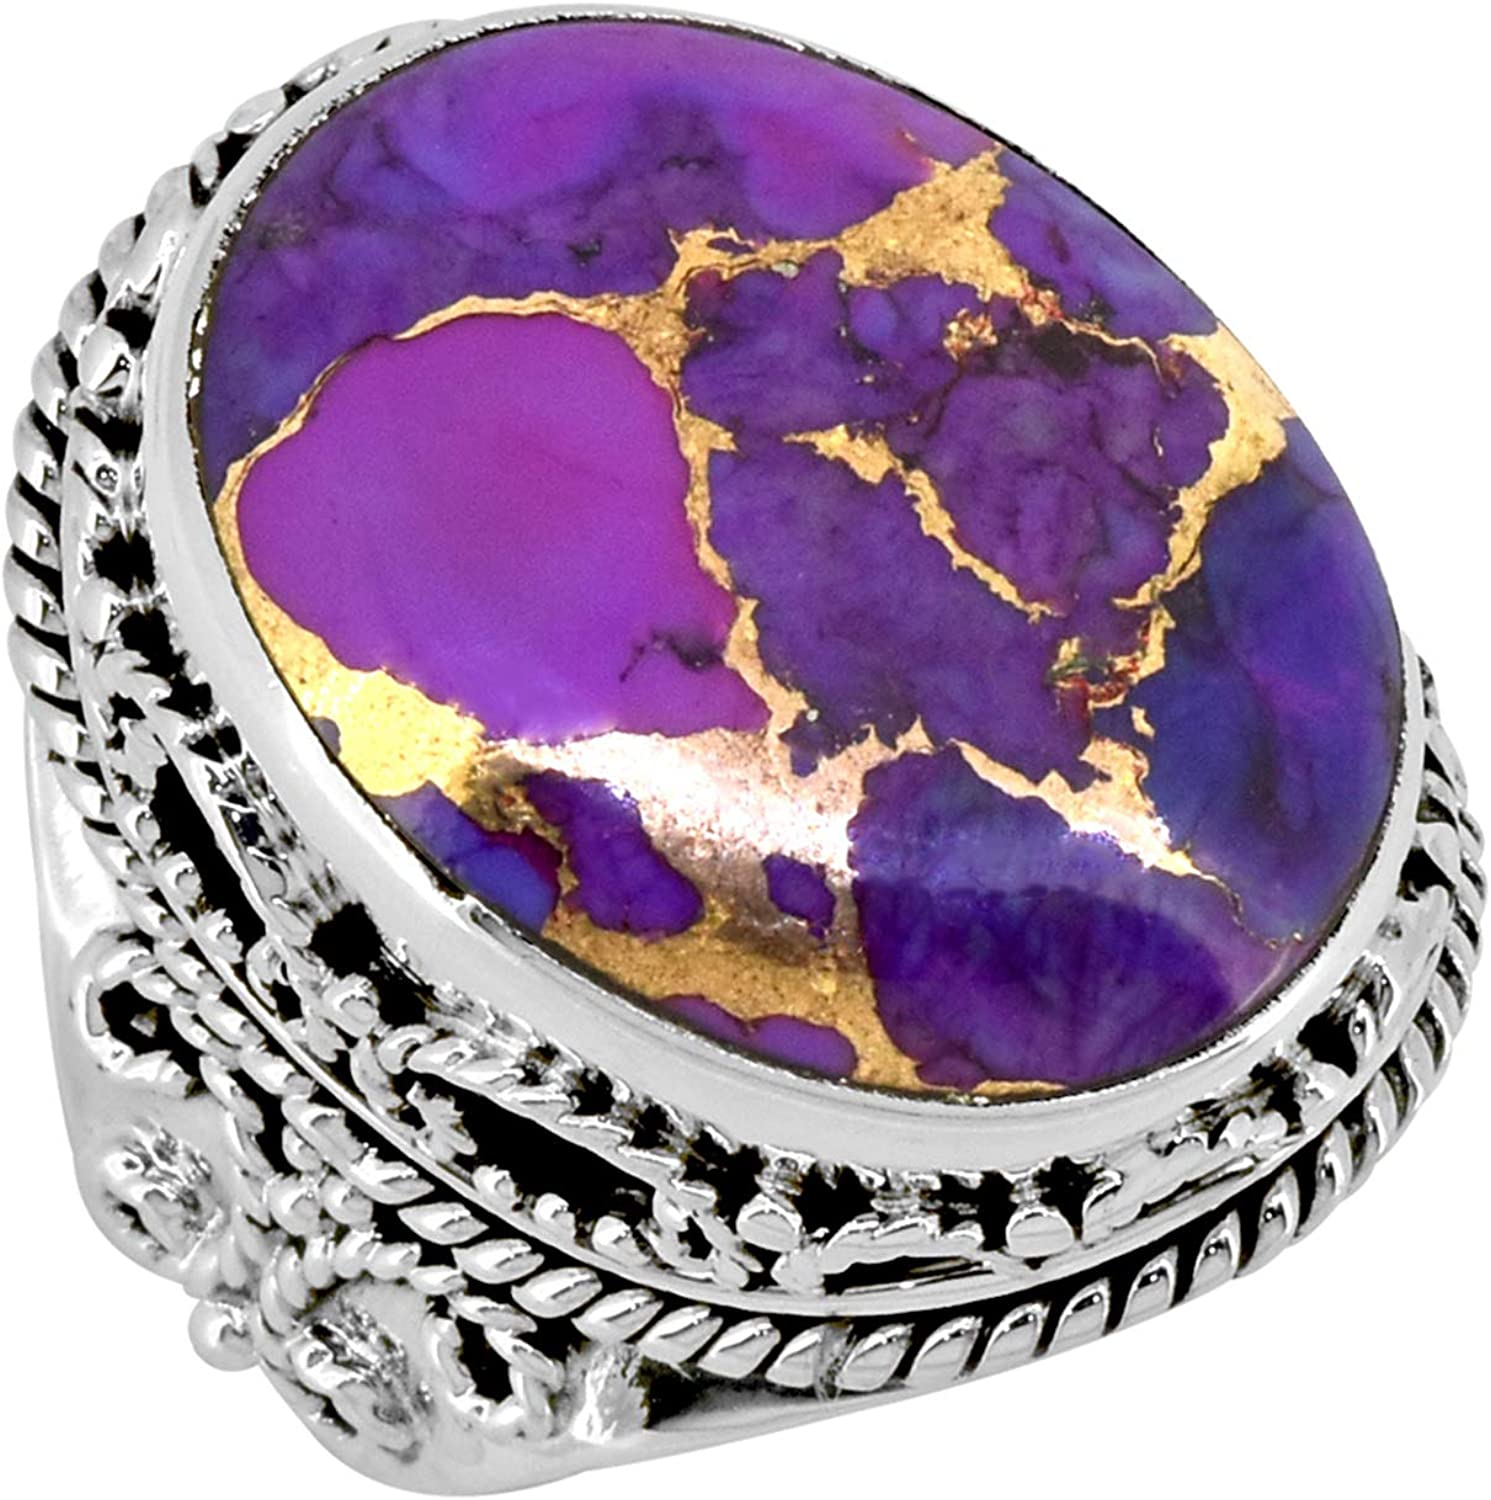 Copper Purple Turquoise Ring 925 Sterling Silver Handmade Jewelry Size 9 lz09001